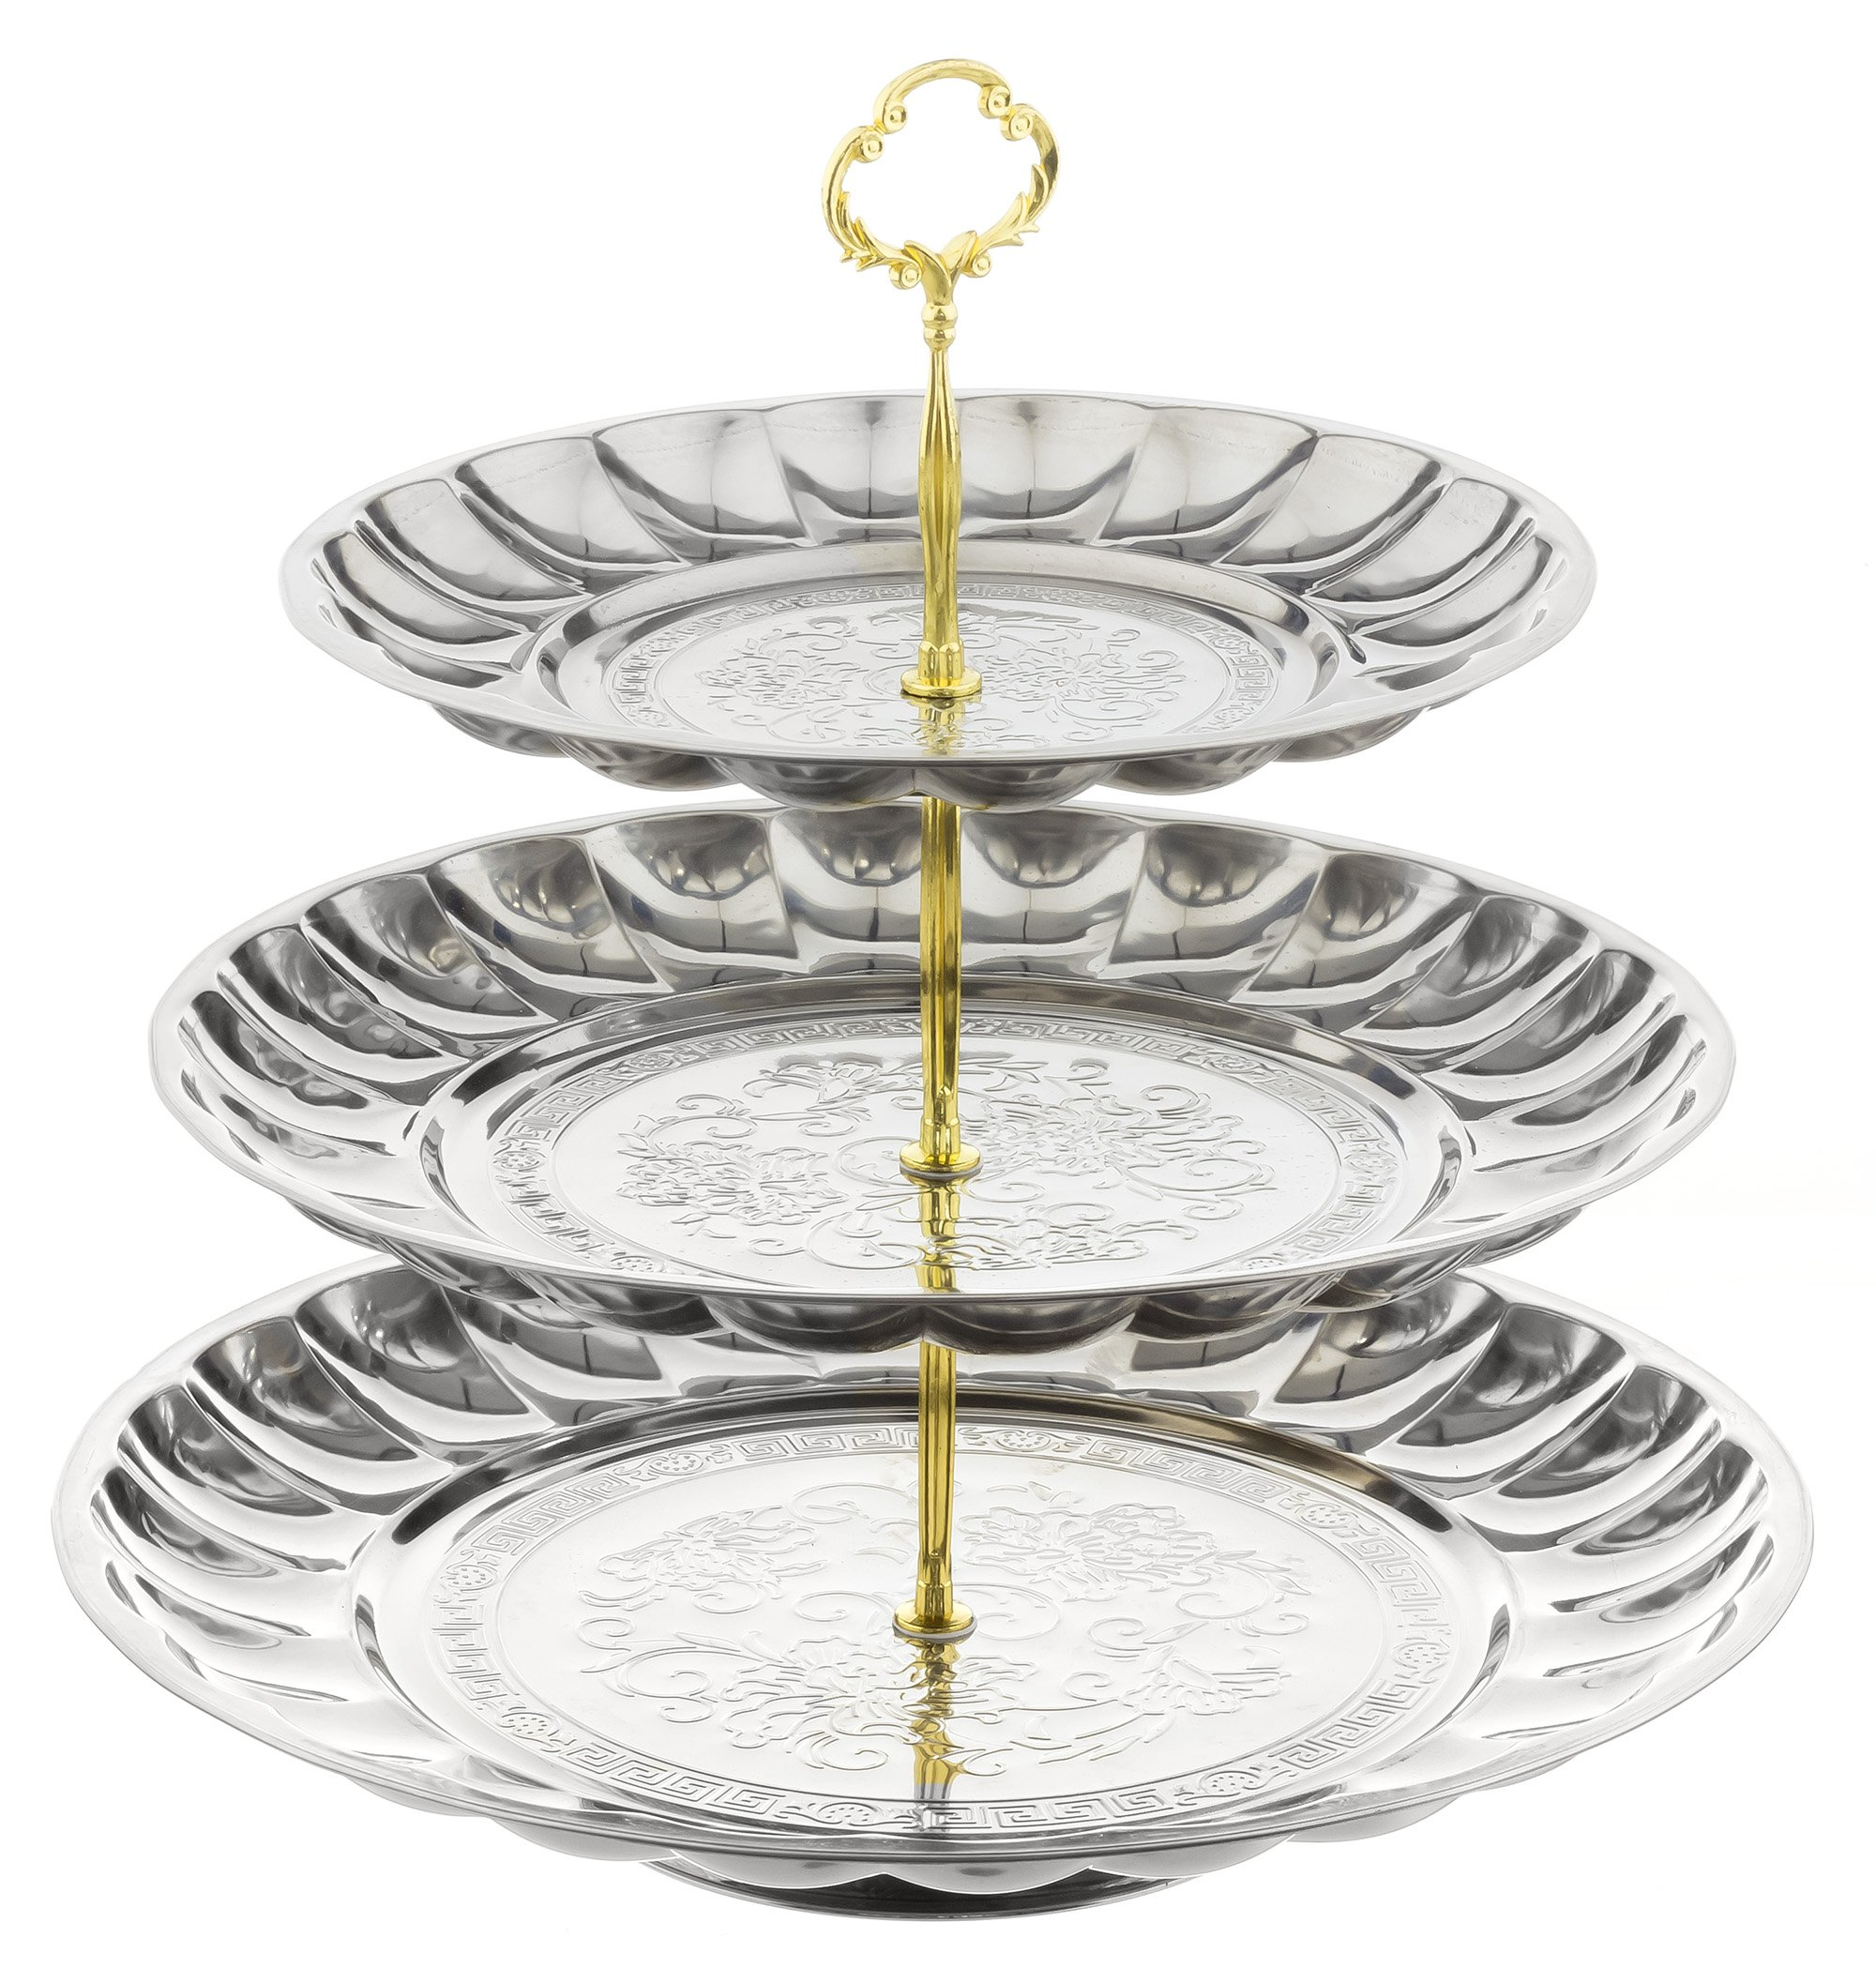 Extra Large 3 Tier Serving Tray(Stainless Steel)-Great Use for Cake and Cupcake Stand,Appetizer and Platter Tray,Fruit and Cheese/Meat Tray.Tiered Stand is Perfect for Party Wedding BBQs and Holidays